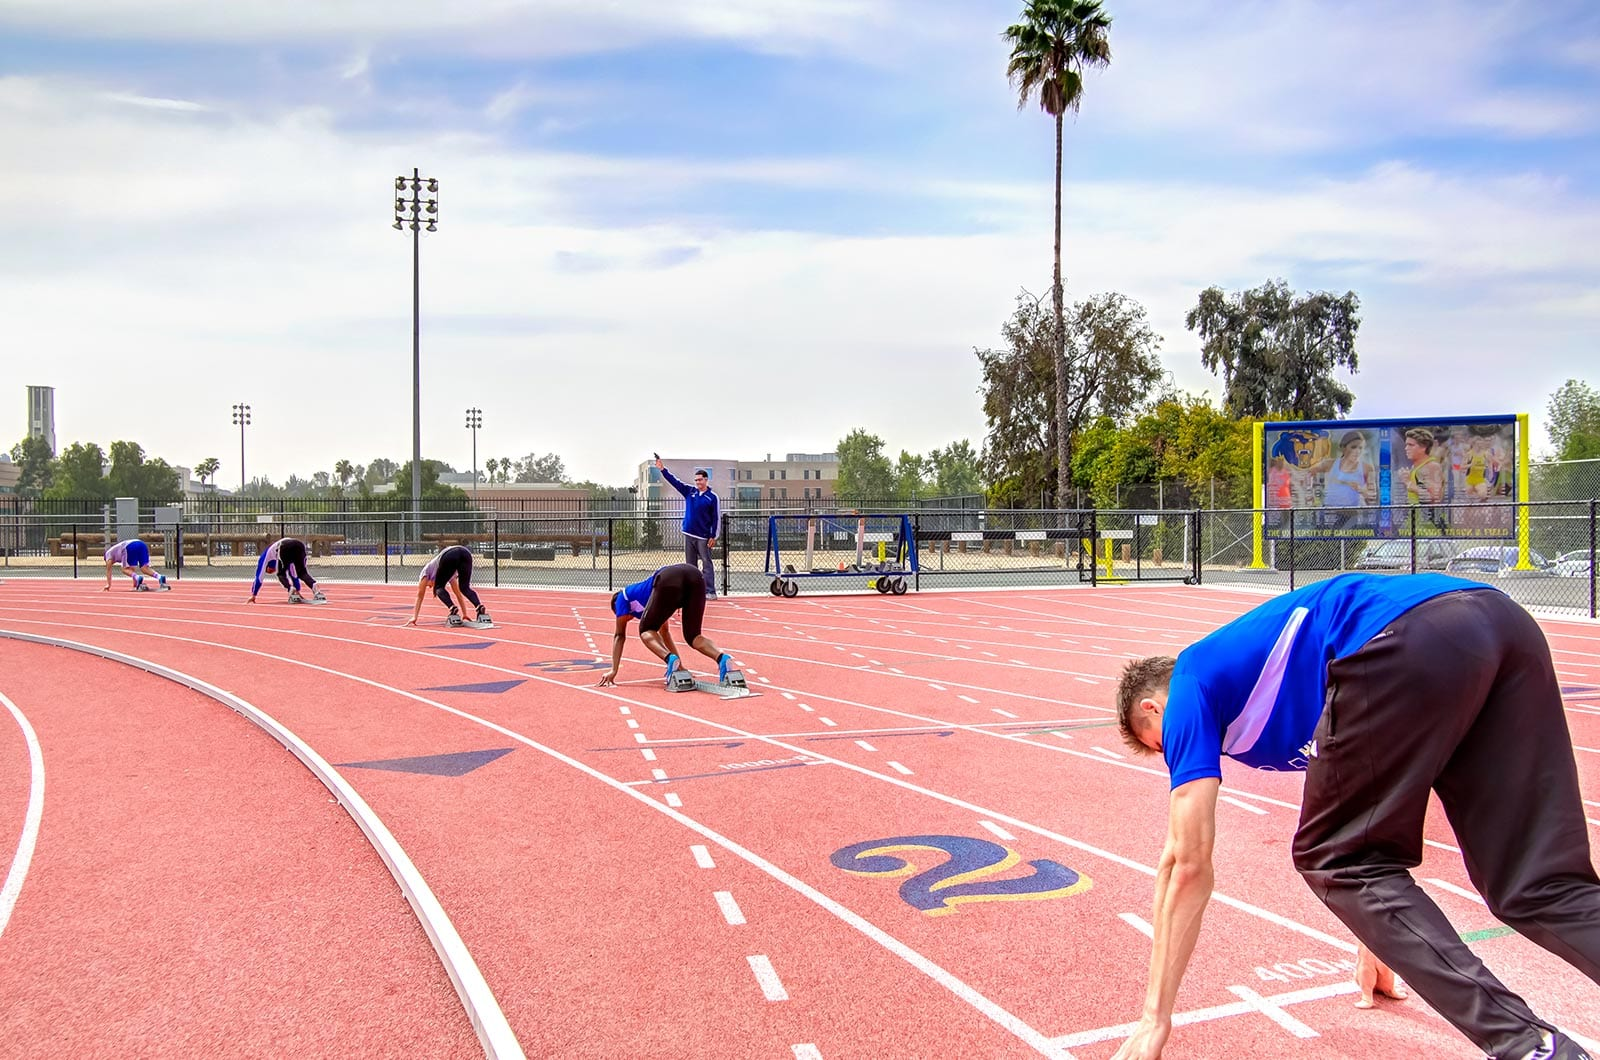 UCR-Track-and-Field-Team-Practice-360-Tours-Virtual-Tour-Company-College-Vitual-Tours-Virtual-Tours-For-College